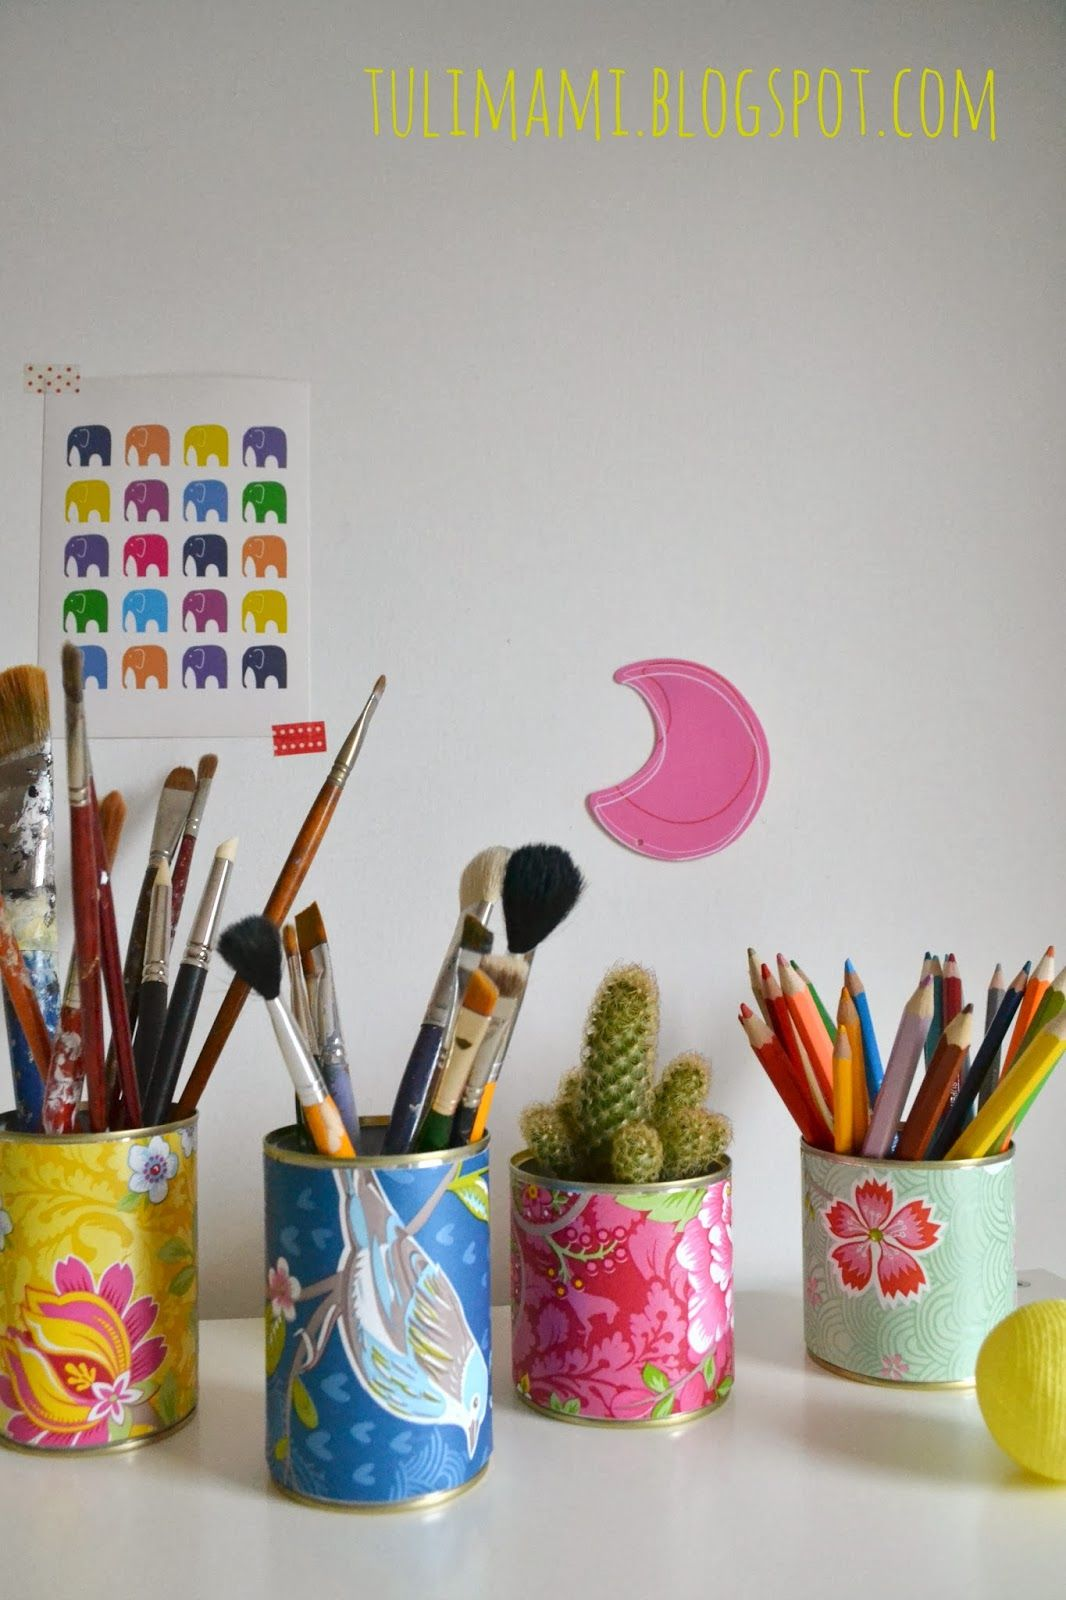 Wednesdiy Wallpaper And Cans Tulimami Tin Can Alley Pinterest